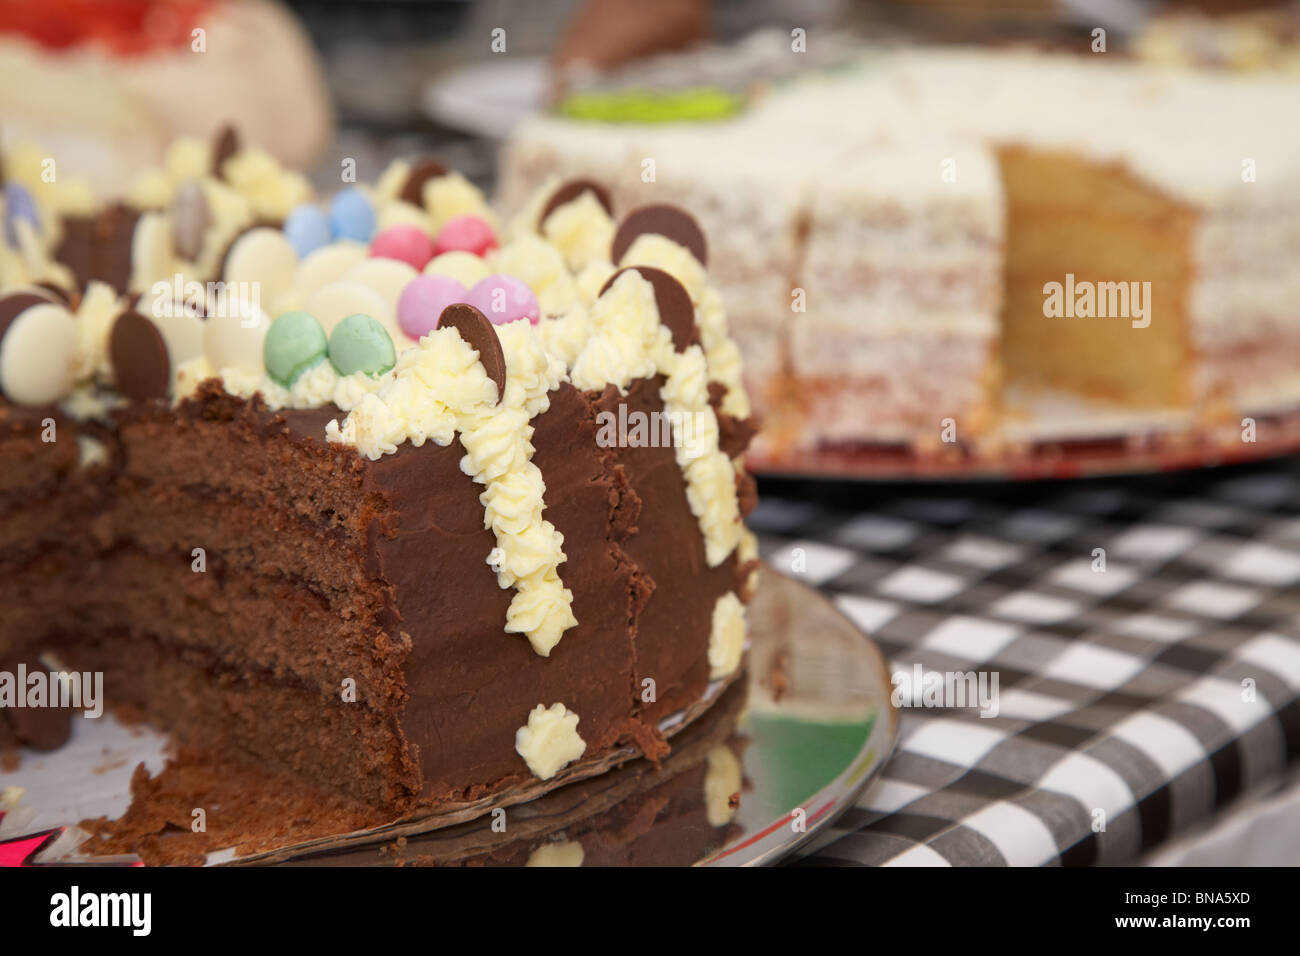 large sliced chocolate cake cakes on table stall market in the uk - Stock Image